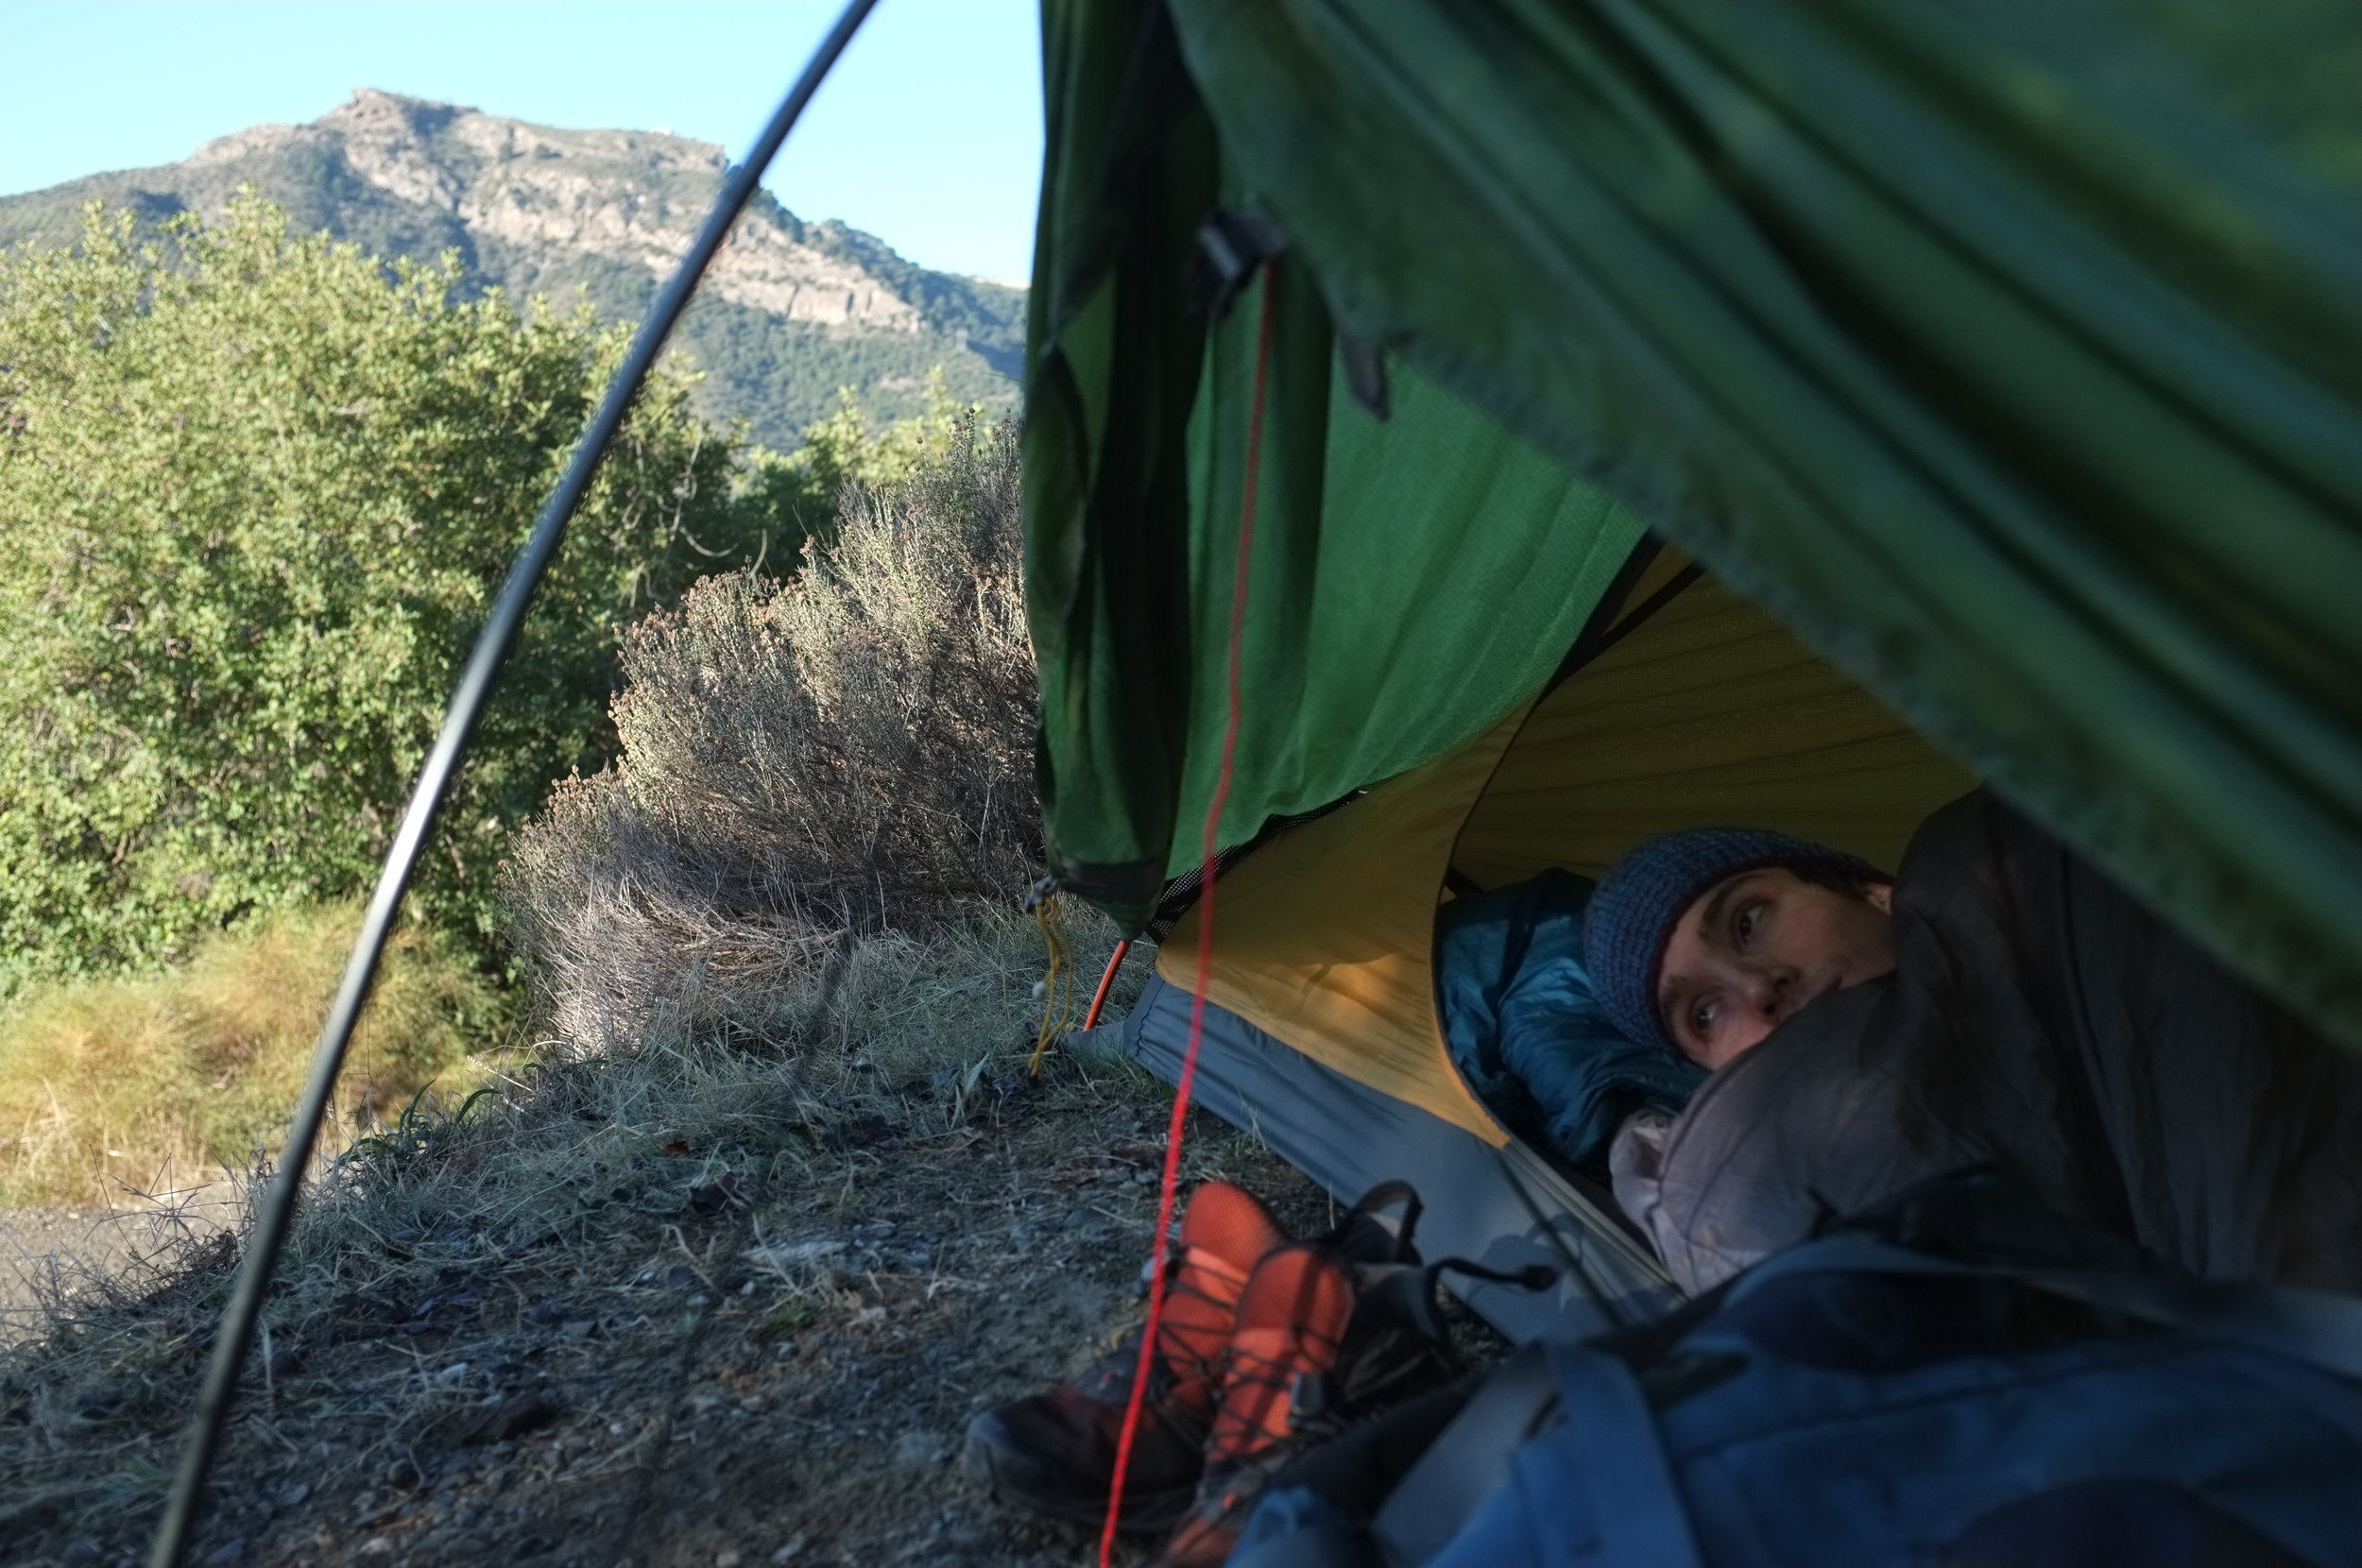 El Chorro Part II - The next part of your audible adventure is here! So put on some headphones, close your eyes and pretend you're camping and climbing with us in Chorro!